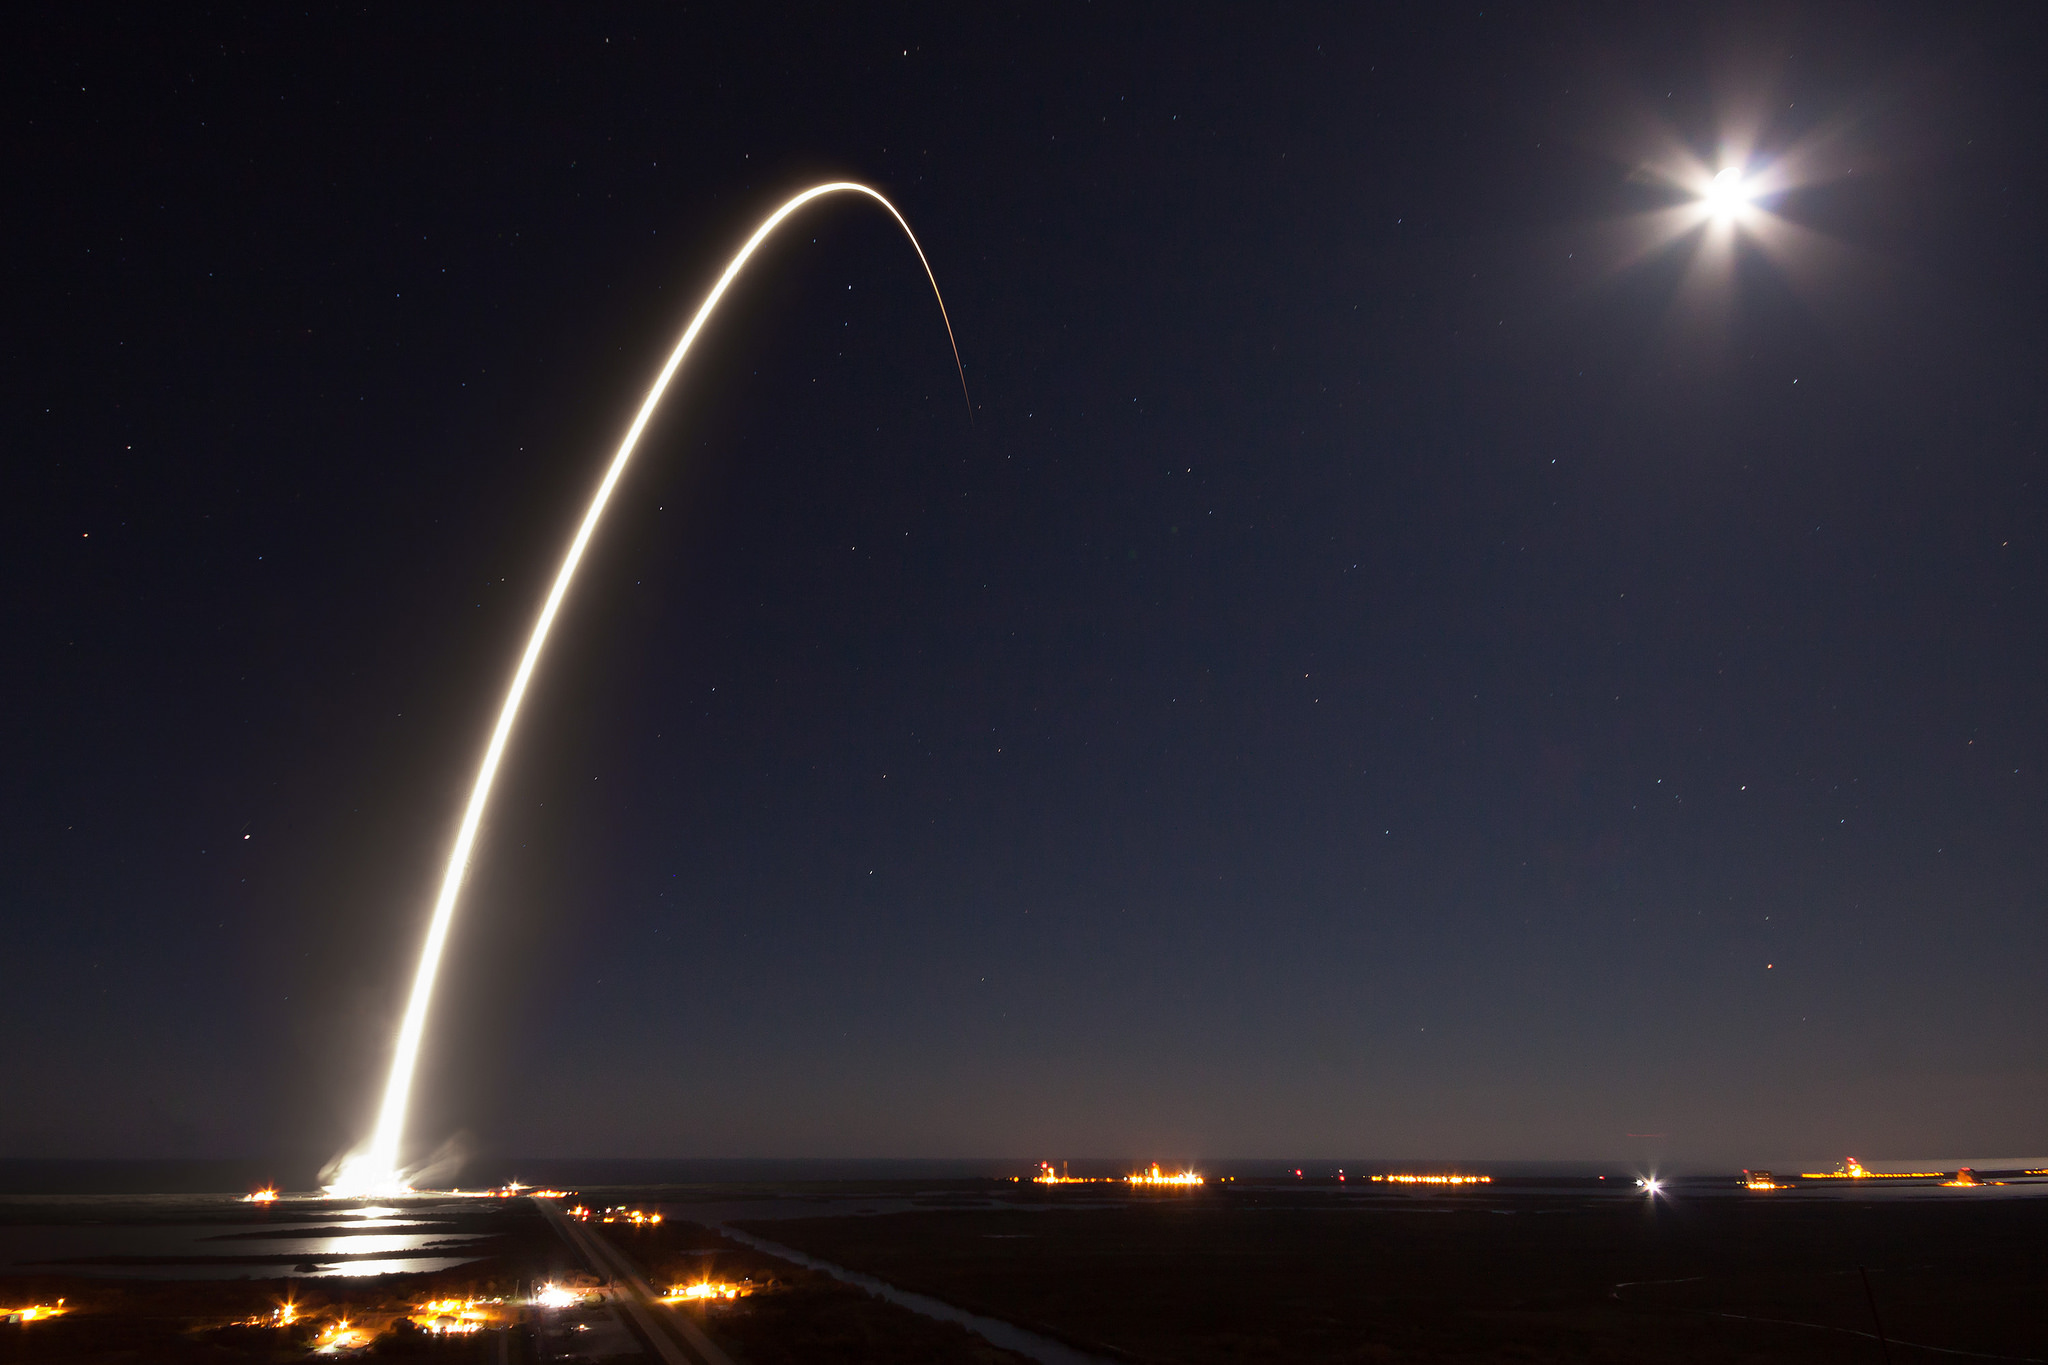 Enlarge SpaceX s Falcon 9 rocket launches the EchoStar 23 satellite in March 2017 credit SpaceX